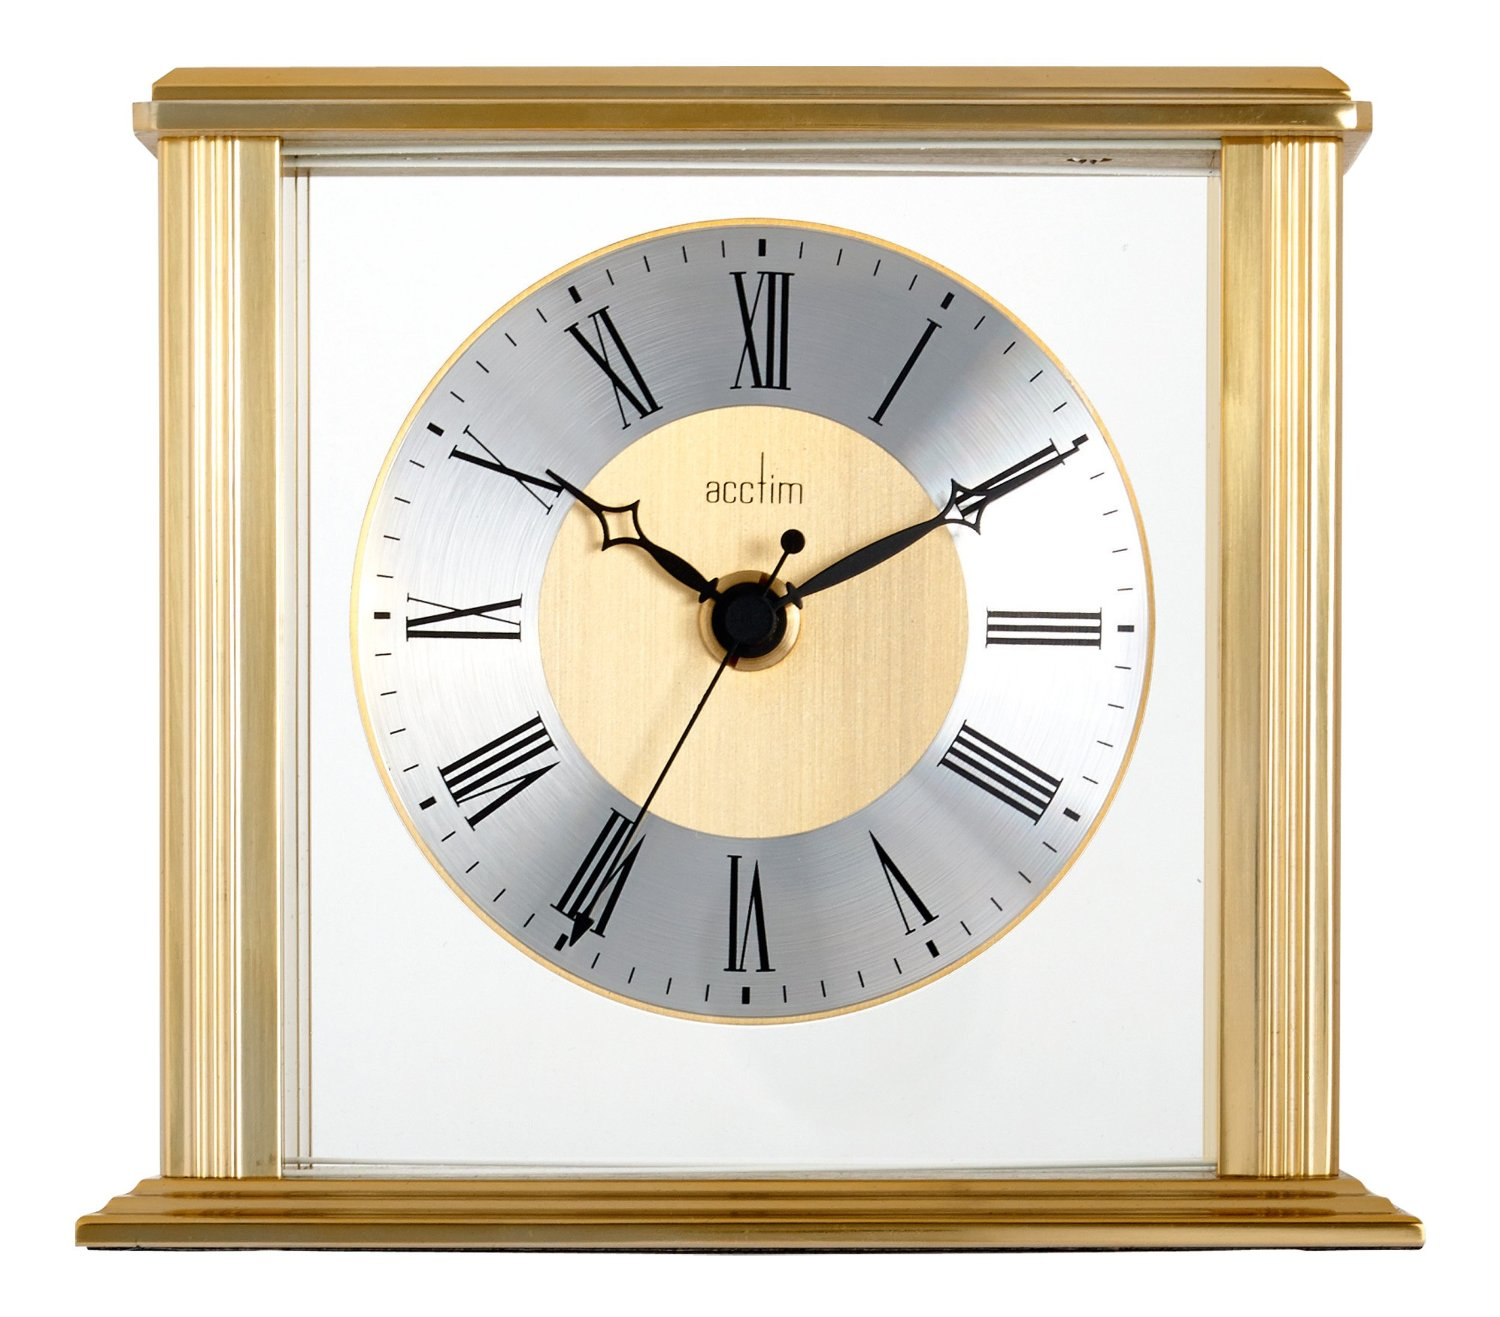 acctim hamilton glass mantel clock